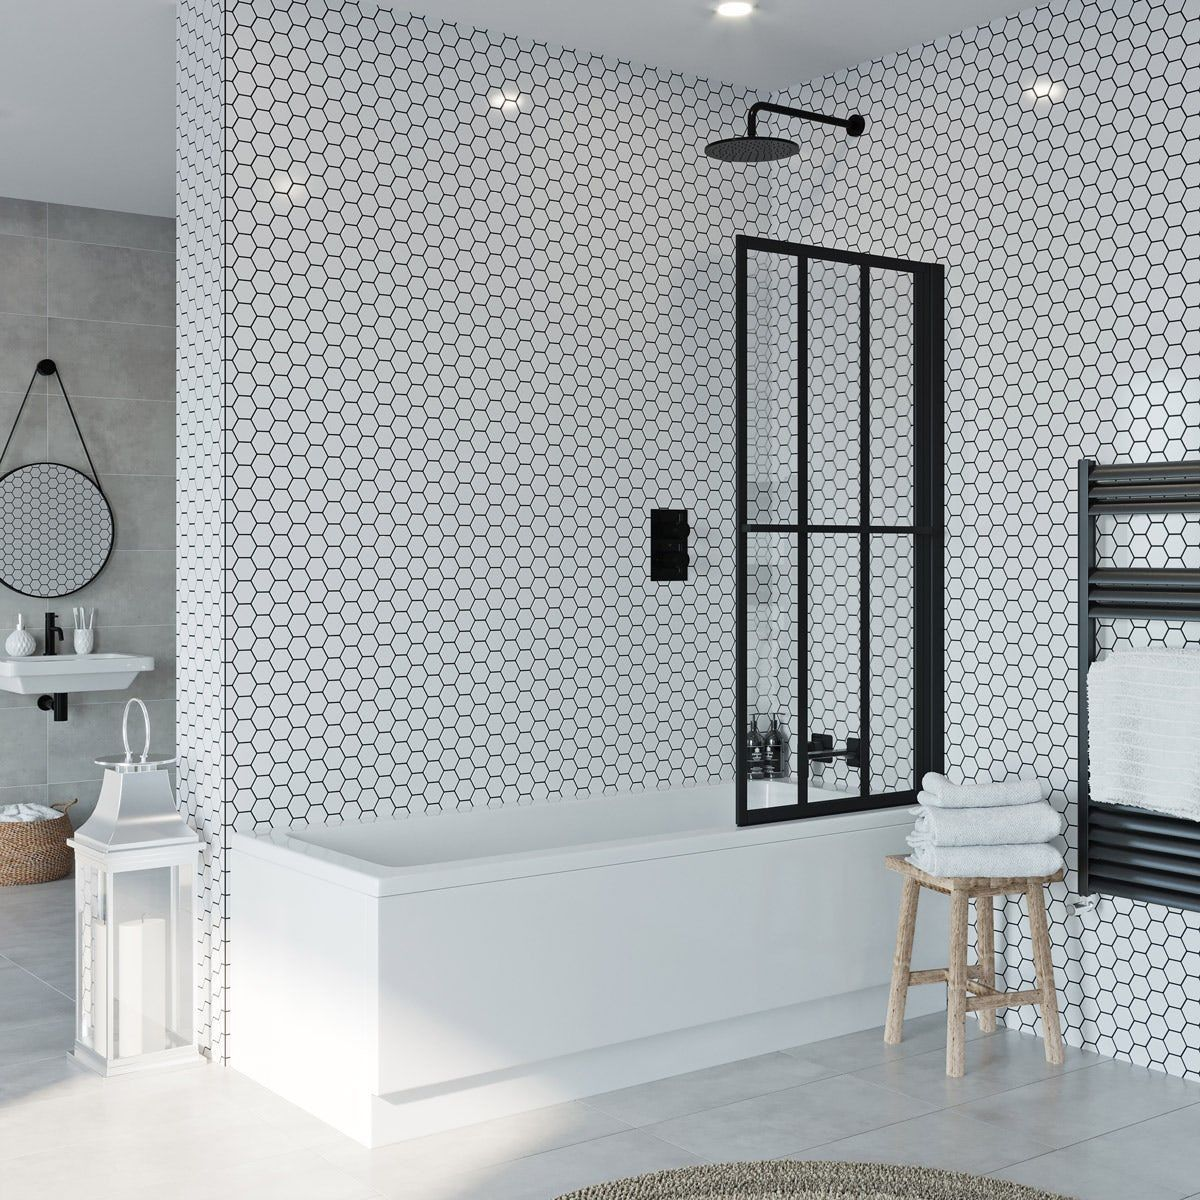 Click Here To Read More About The Jacuzzi Loft Black Framed Rising Shower Bath Screen Victoriaplum Com Jacuz With Images Bath Shower Screens Bath Screens Shower Screen